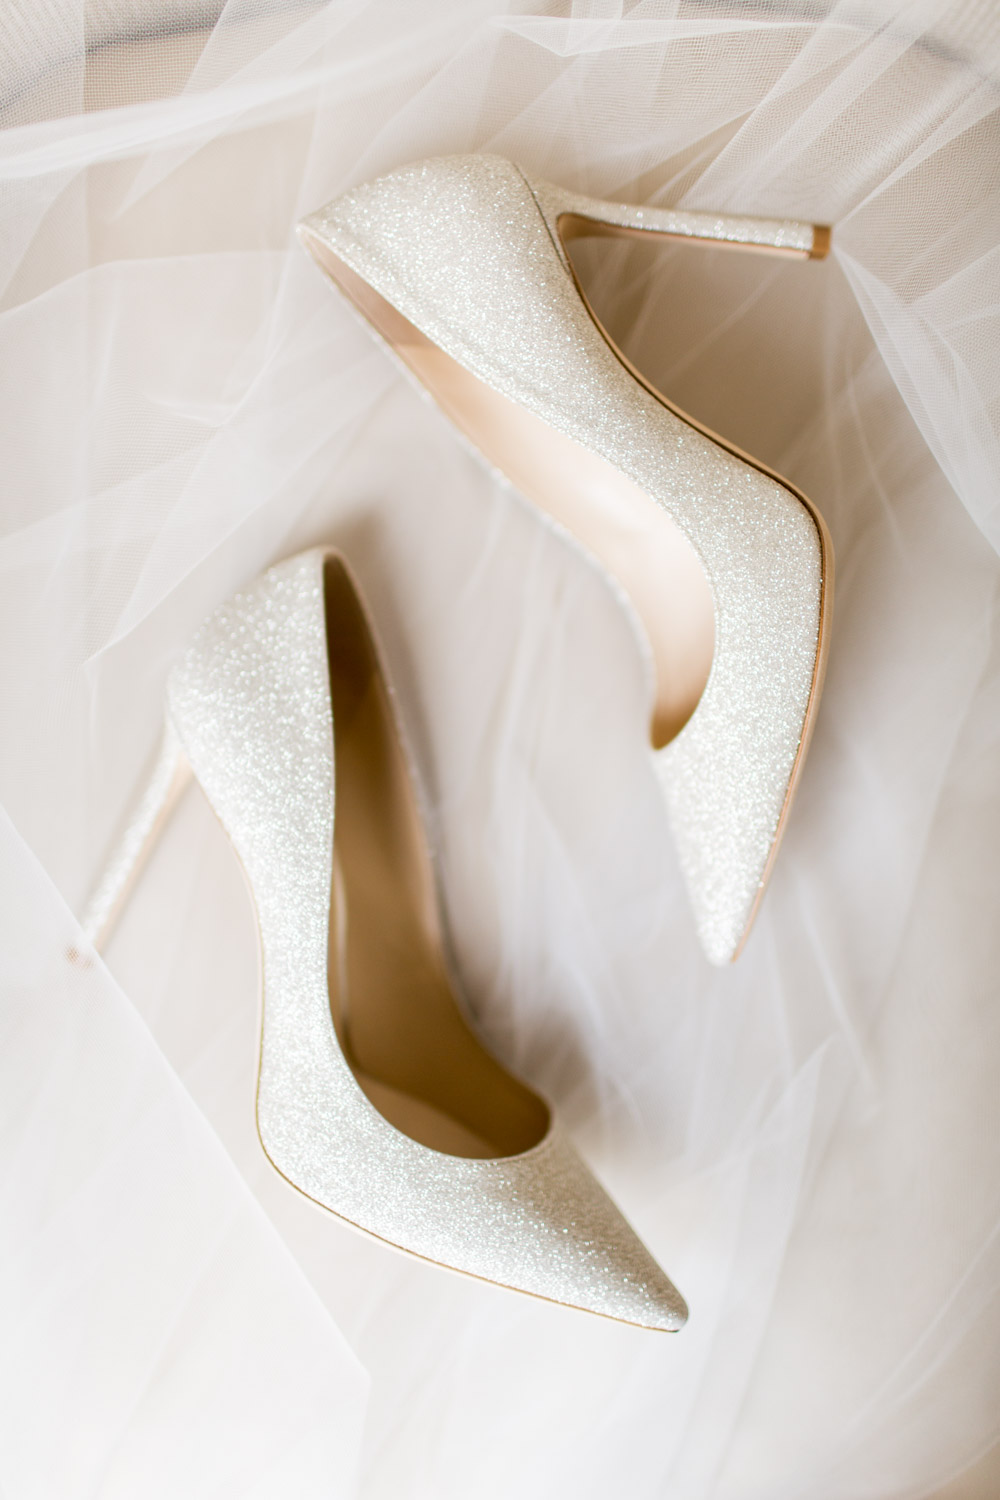 Jimmy Choo pointed toe pump bridal shoes in champagne beige, Cavin Elizabeth Photography